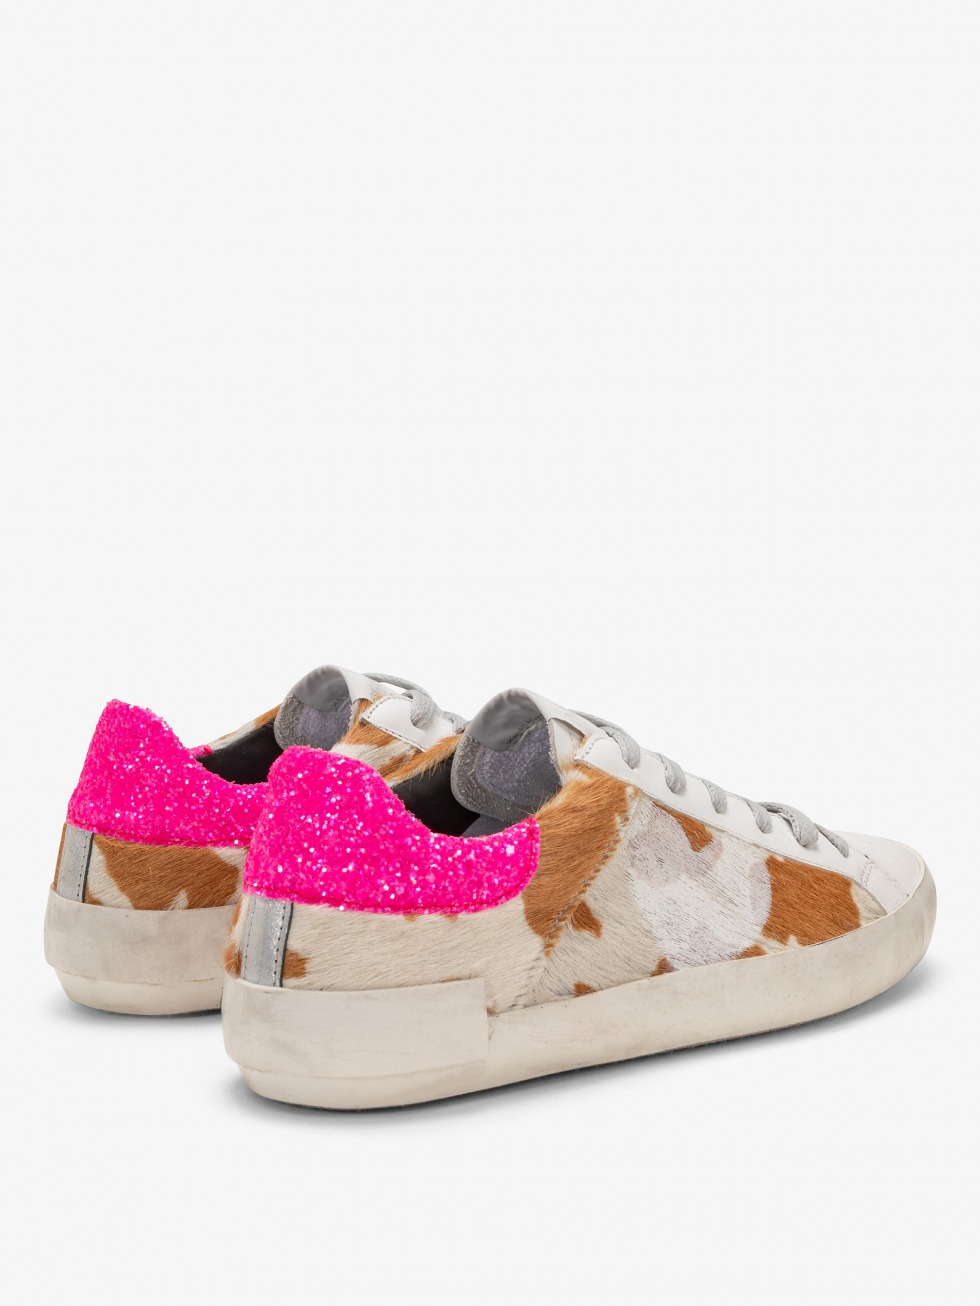 SHOPPING ON LINE NIRA RUBENS SNEAKERS GINGER ALE FRIDA CUORE NEW COLLECTION WOMEN'S SPRING SUMMER 2021